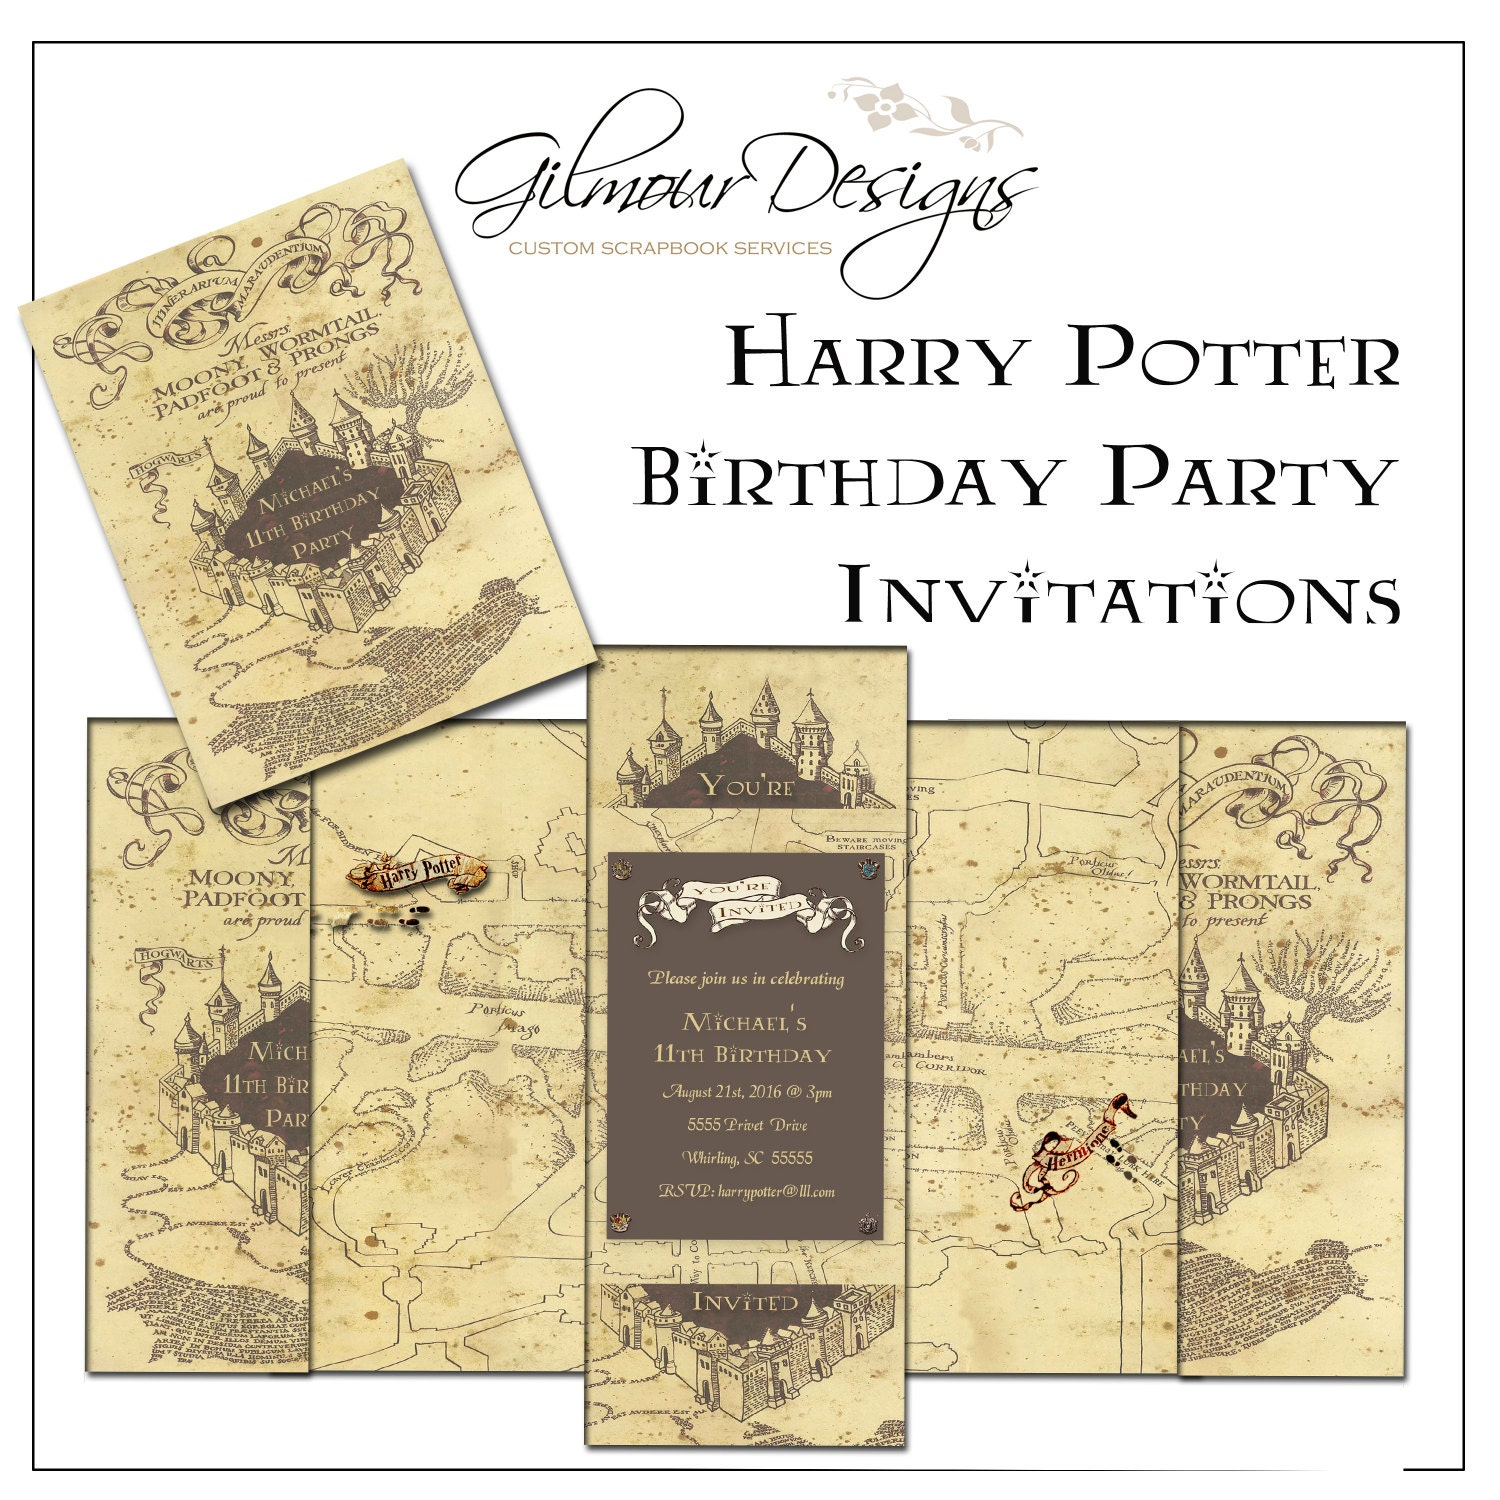 Légend image within printable marauders map